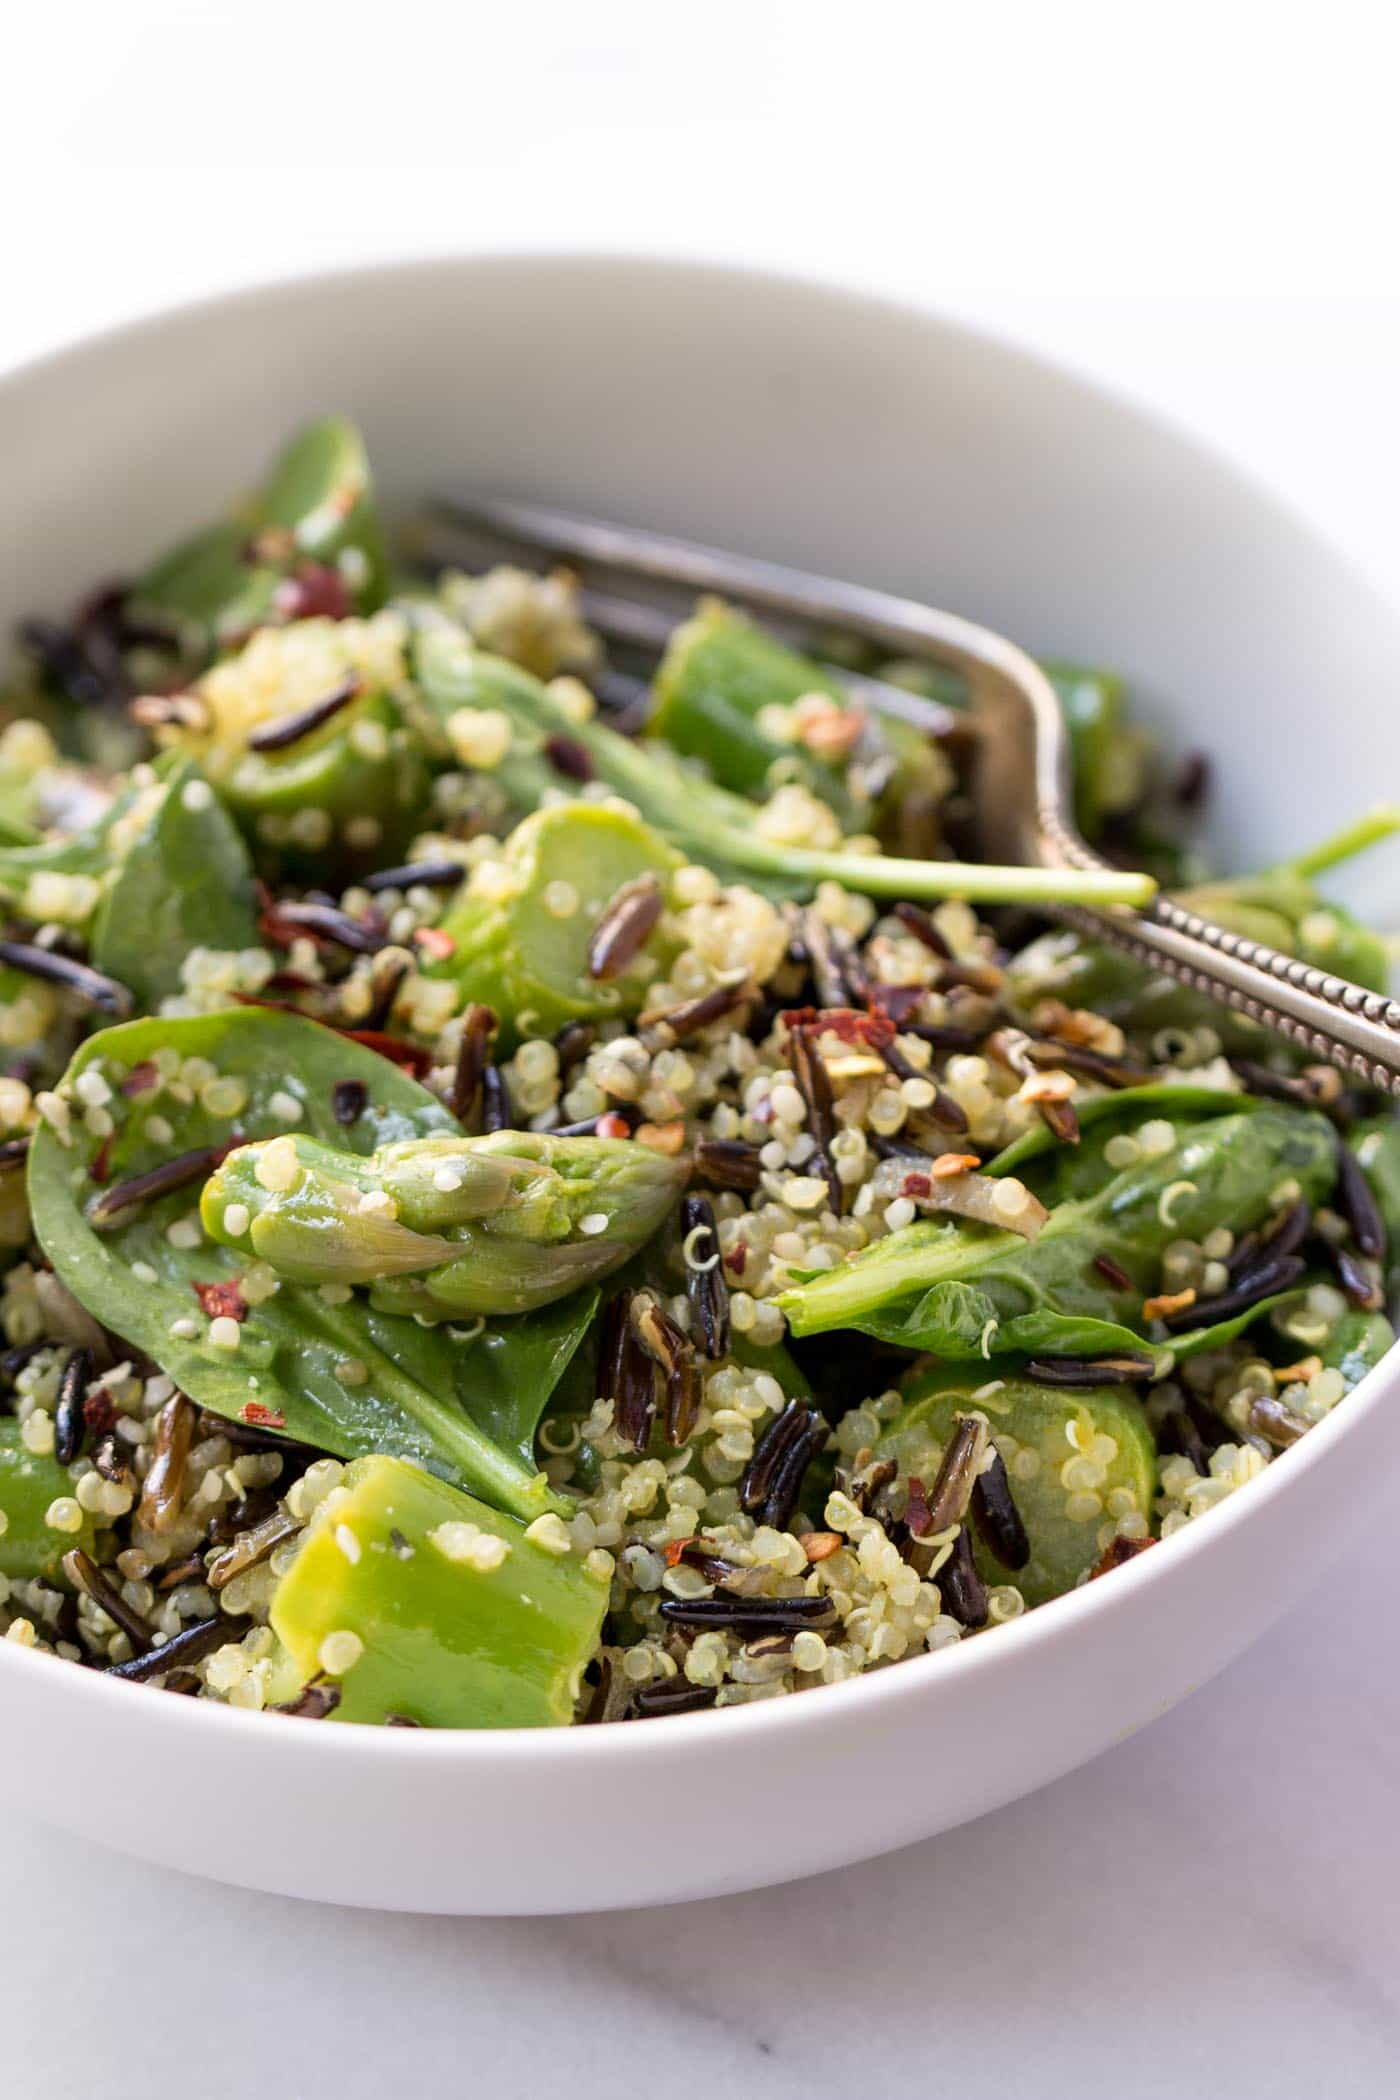 The perfect combination >> Wild Rice Quinoa Salad with Asparagus and a Lemon-Turmeric Dressing! So simple, but so flavorful!